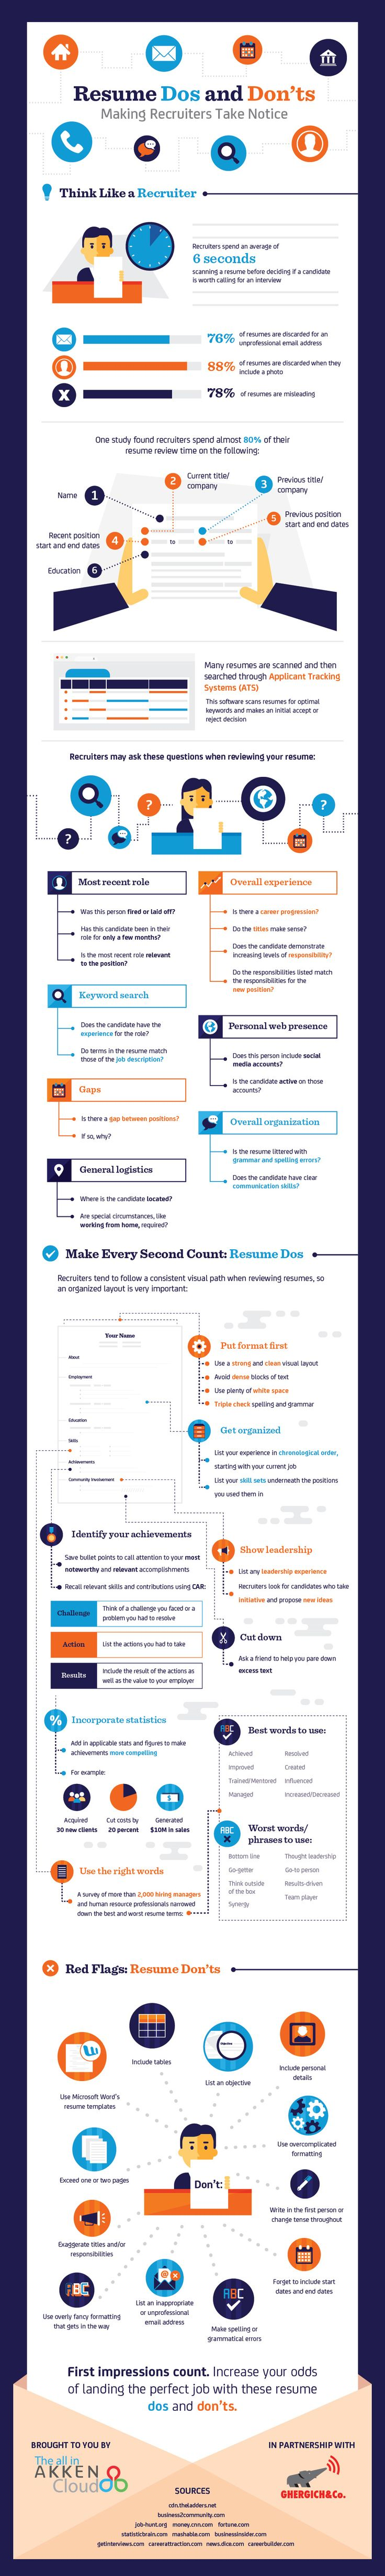 resume dos and don ts making recruiters take notice infographic